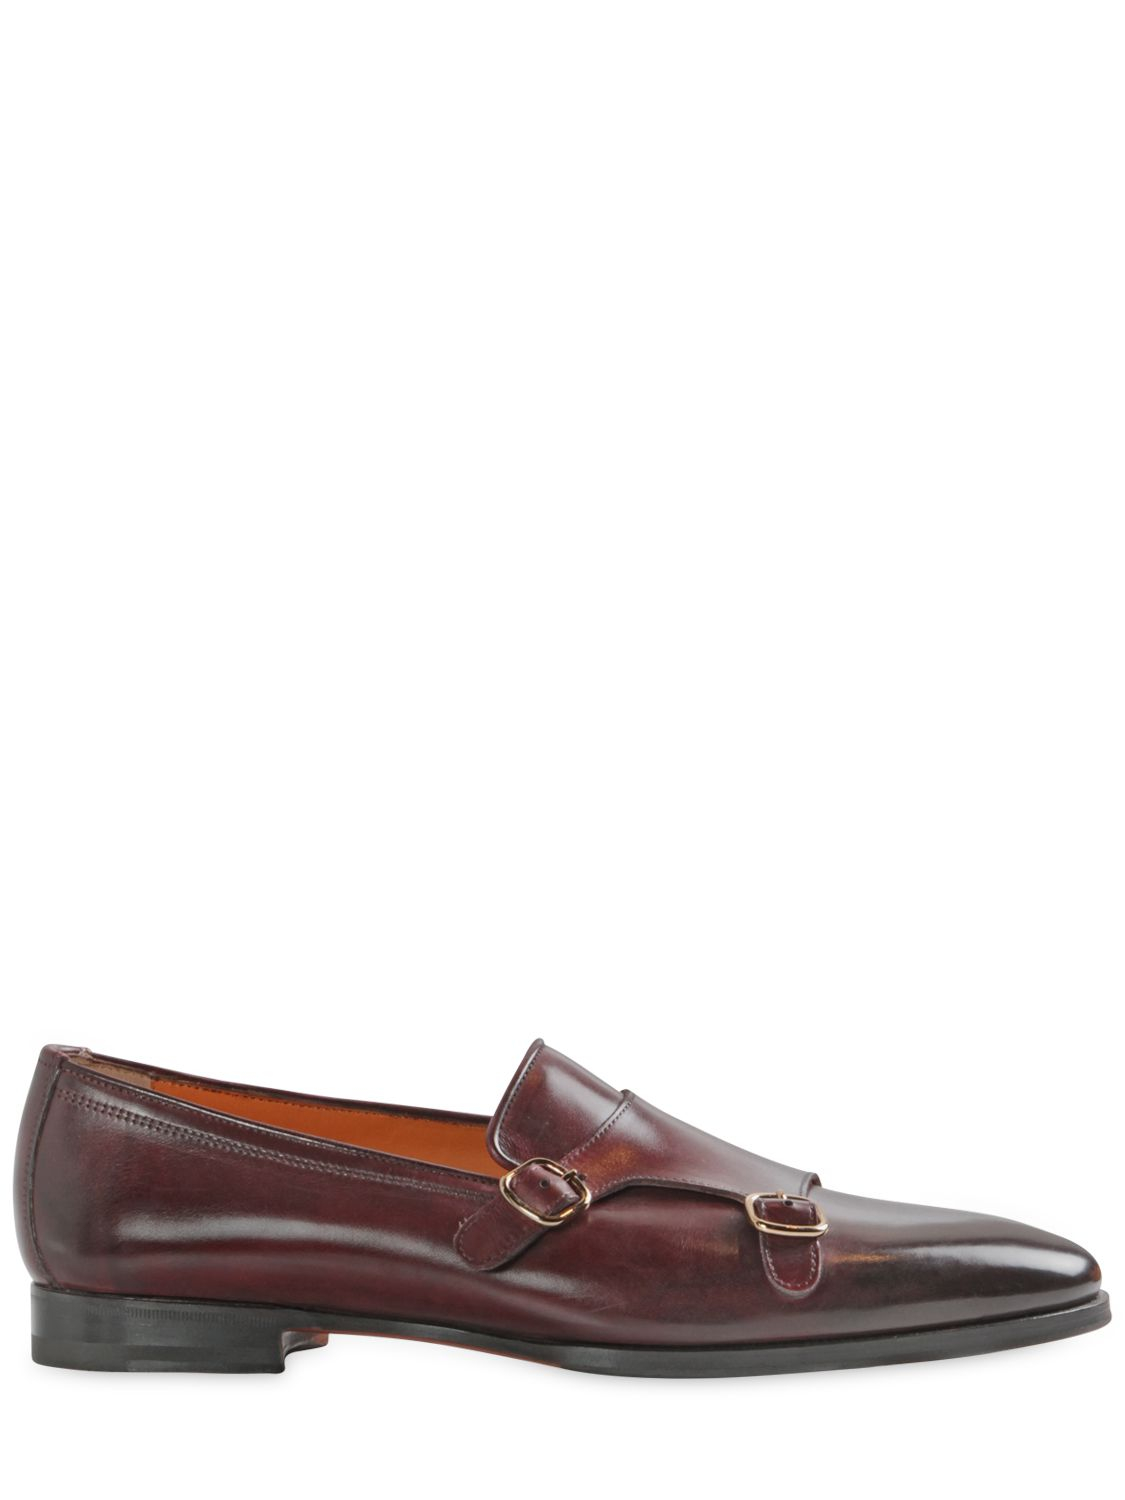 Lyst Santoni Hand Painted Leather Monk Strap Loafers In